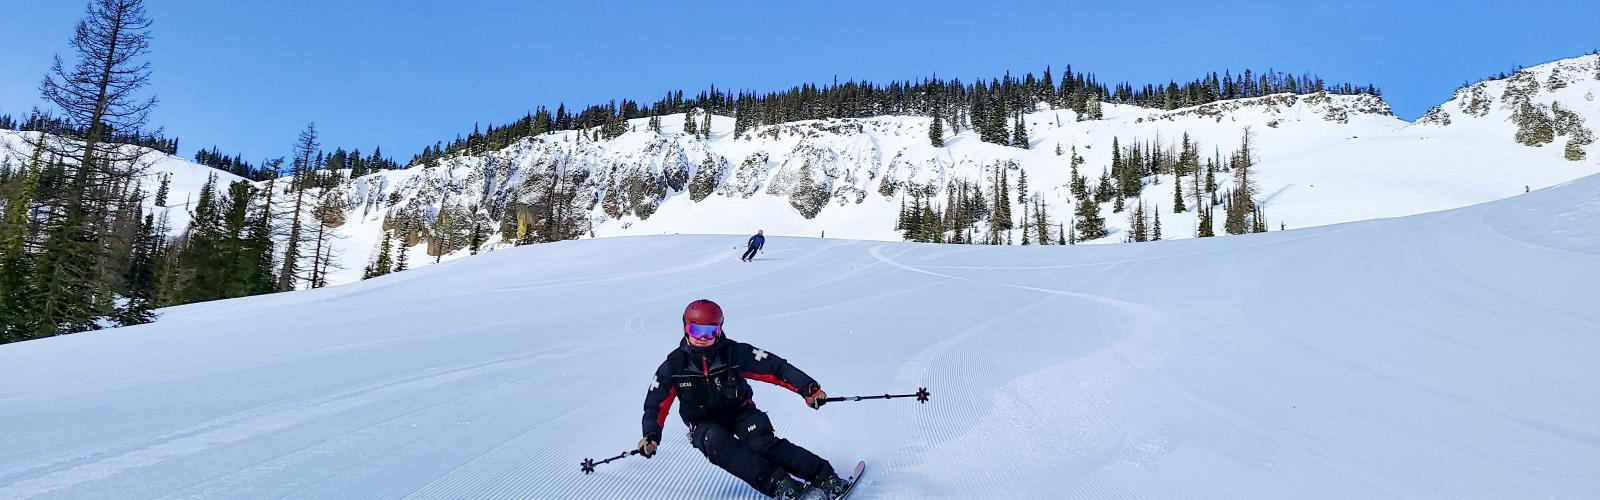 Close up of ski patroller making a turn on fresh corduroy with bomber cliffs in background